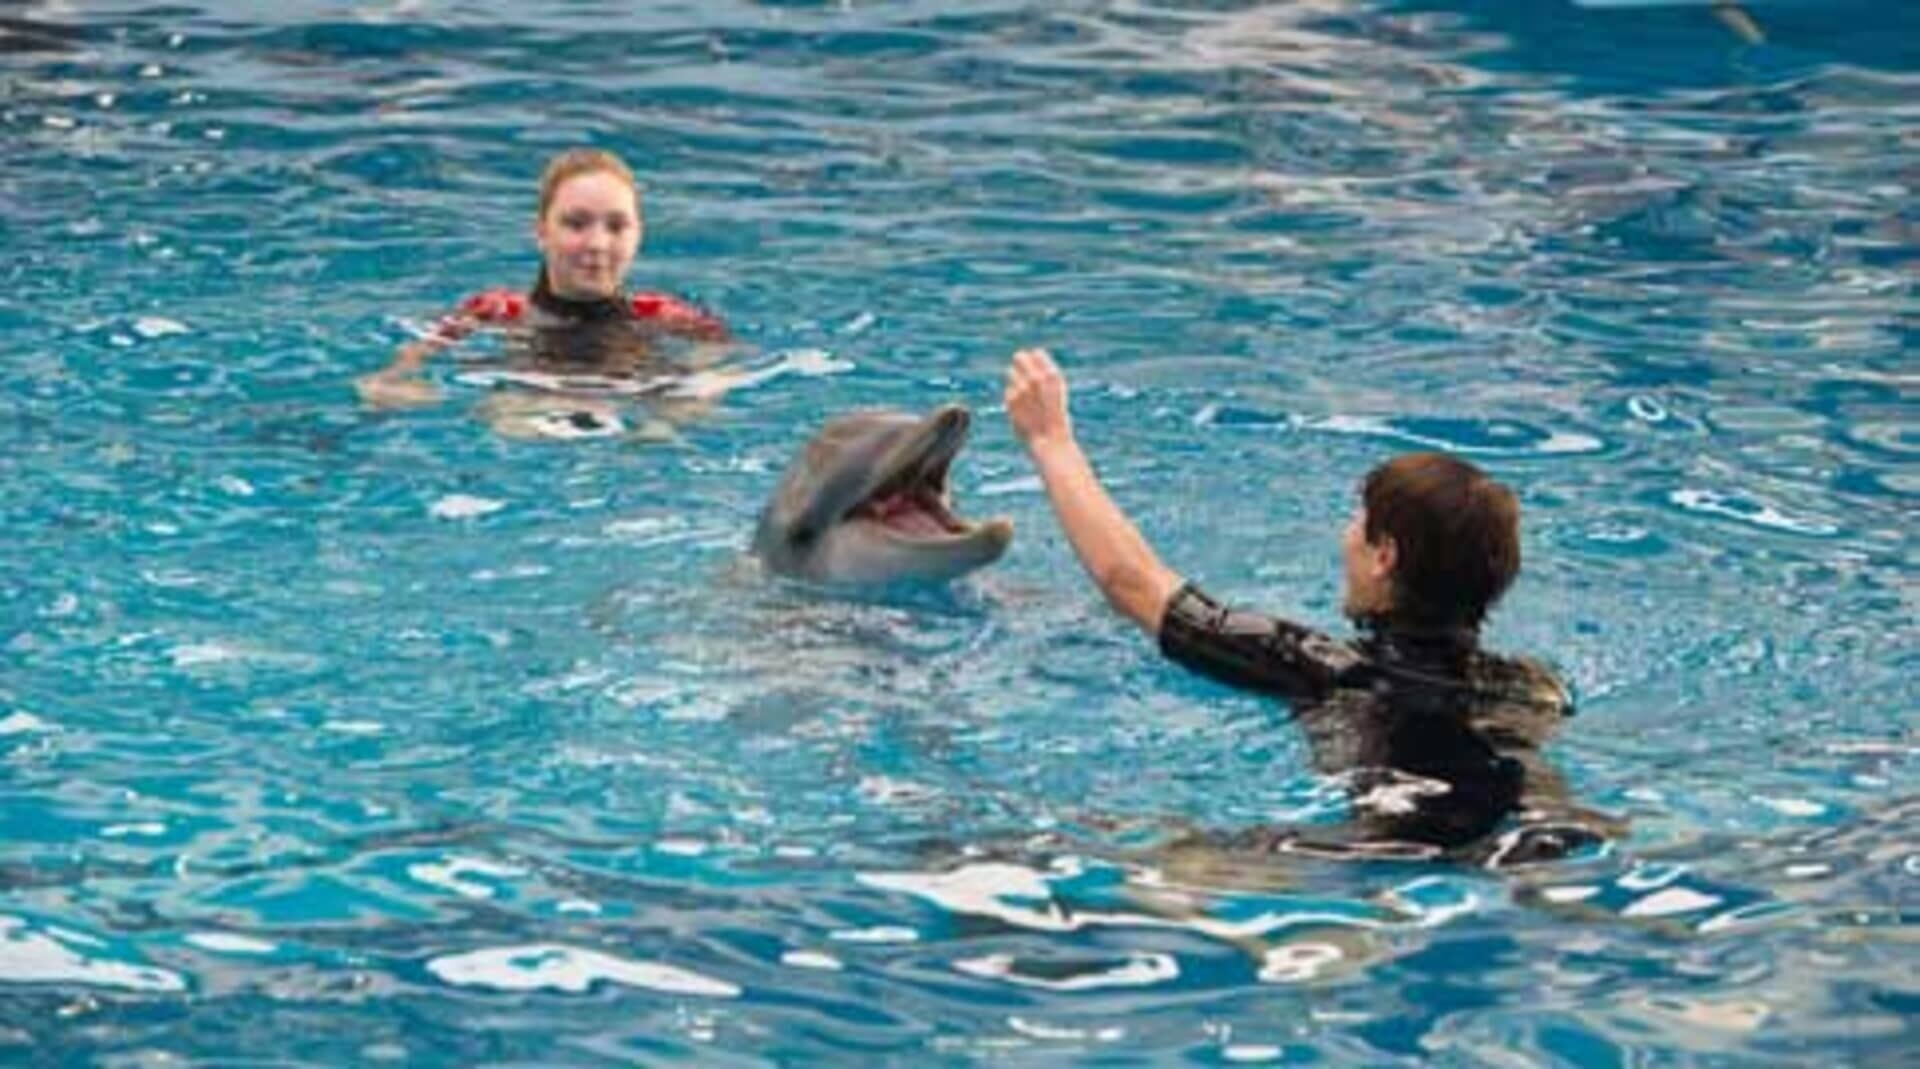 Dolphin Tale 2 - Image 26